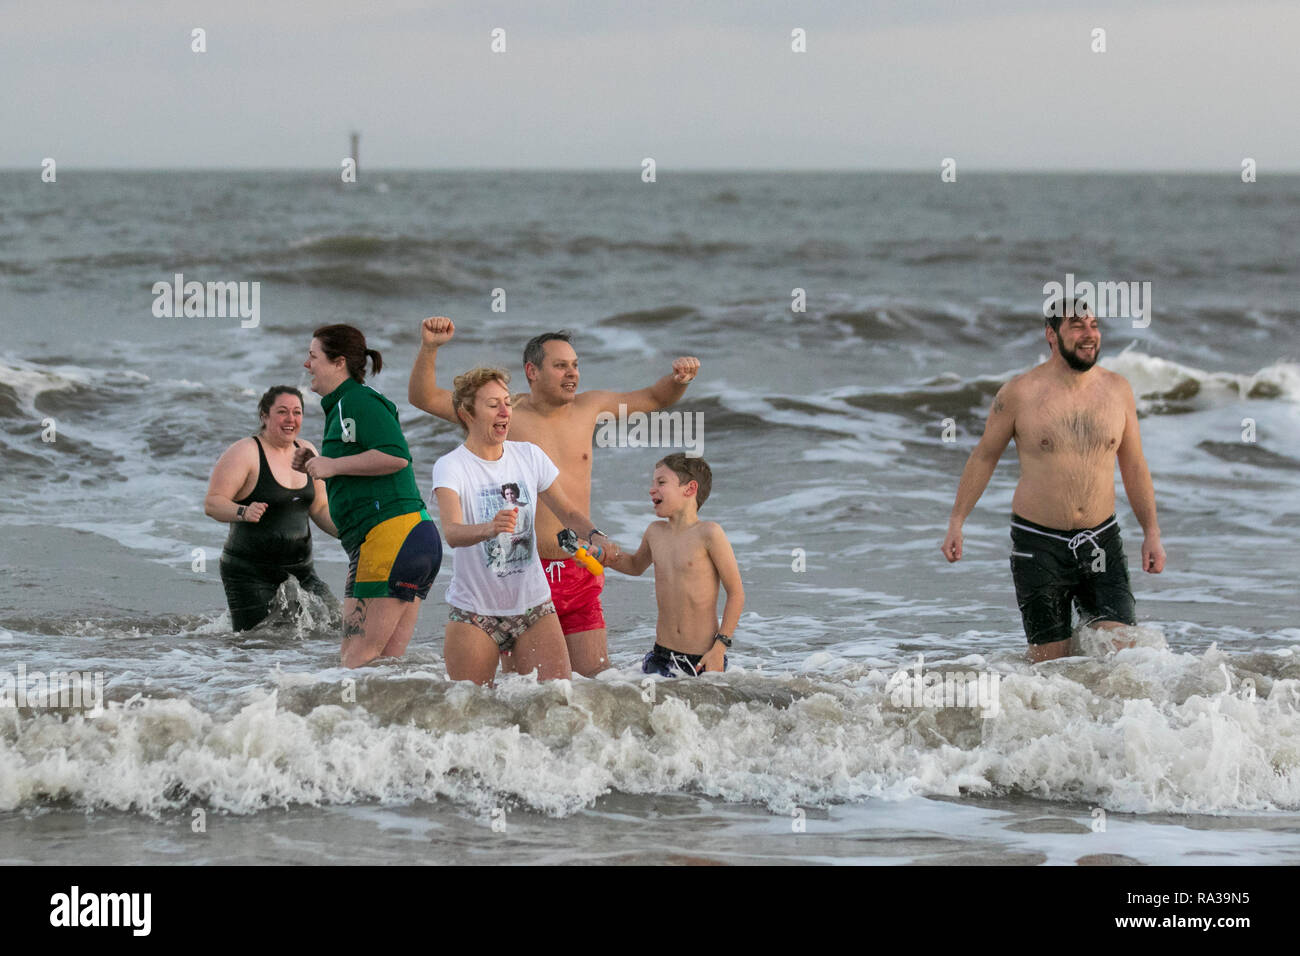 Fleetwood, Lancashire, UK. 1st Jan 2019. New Year's Day Swim. Organised by Fleetwood Kite Club, the New Year's Day Dip is a fairly new tradition in Fleetwood. It started in the 1990's and is growing every year.  There are no rules other than no wetsuits allowed. There's no minimum time of how long you have to stay in the sea for – other than you have to get wet!  Credit: MediaWorldImages/AlamyLiveNews. - Stock Image